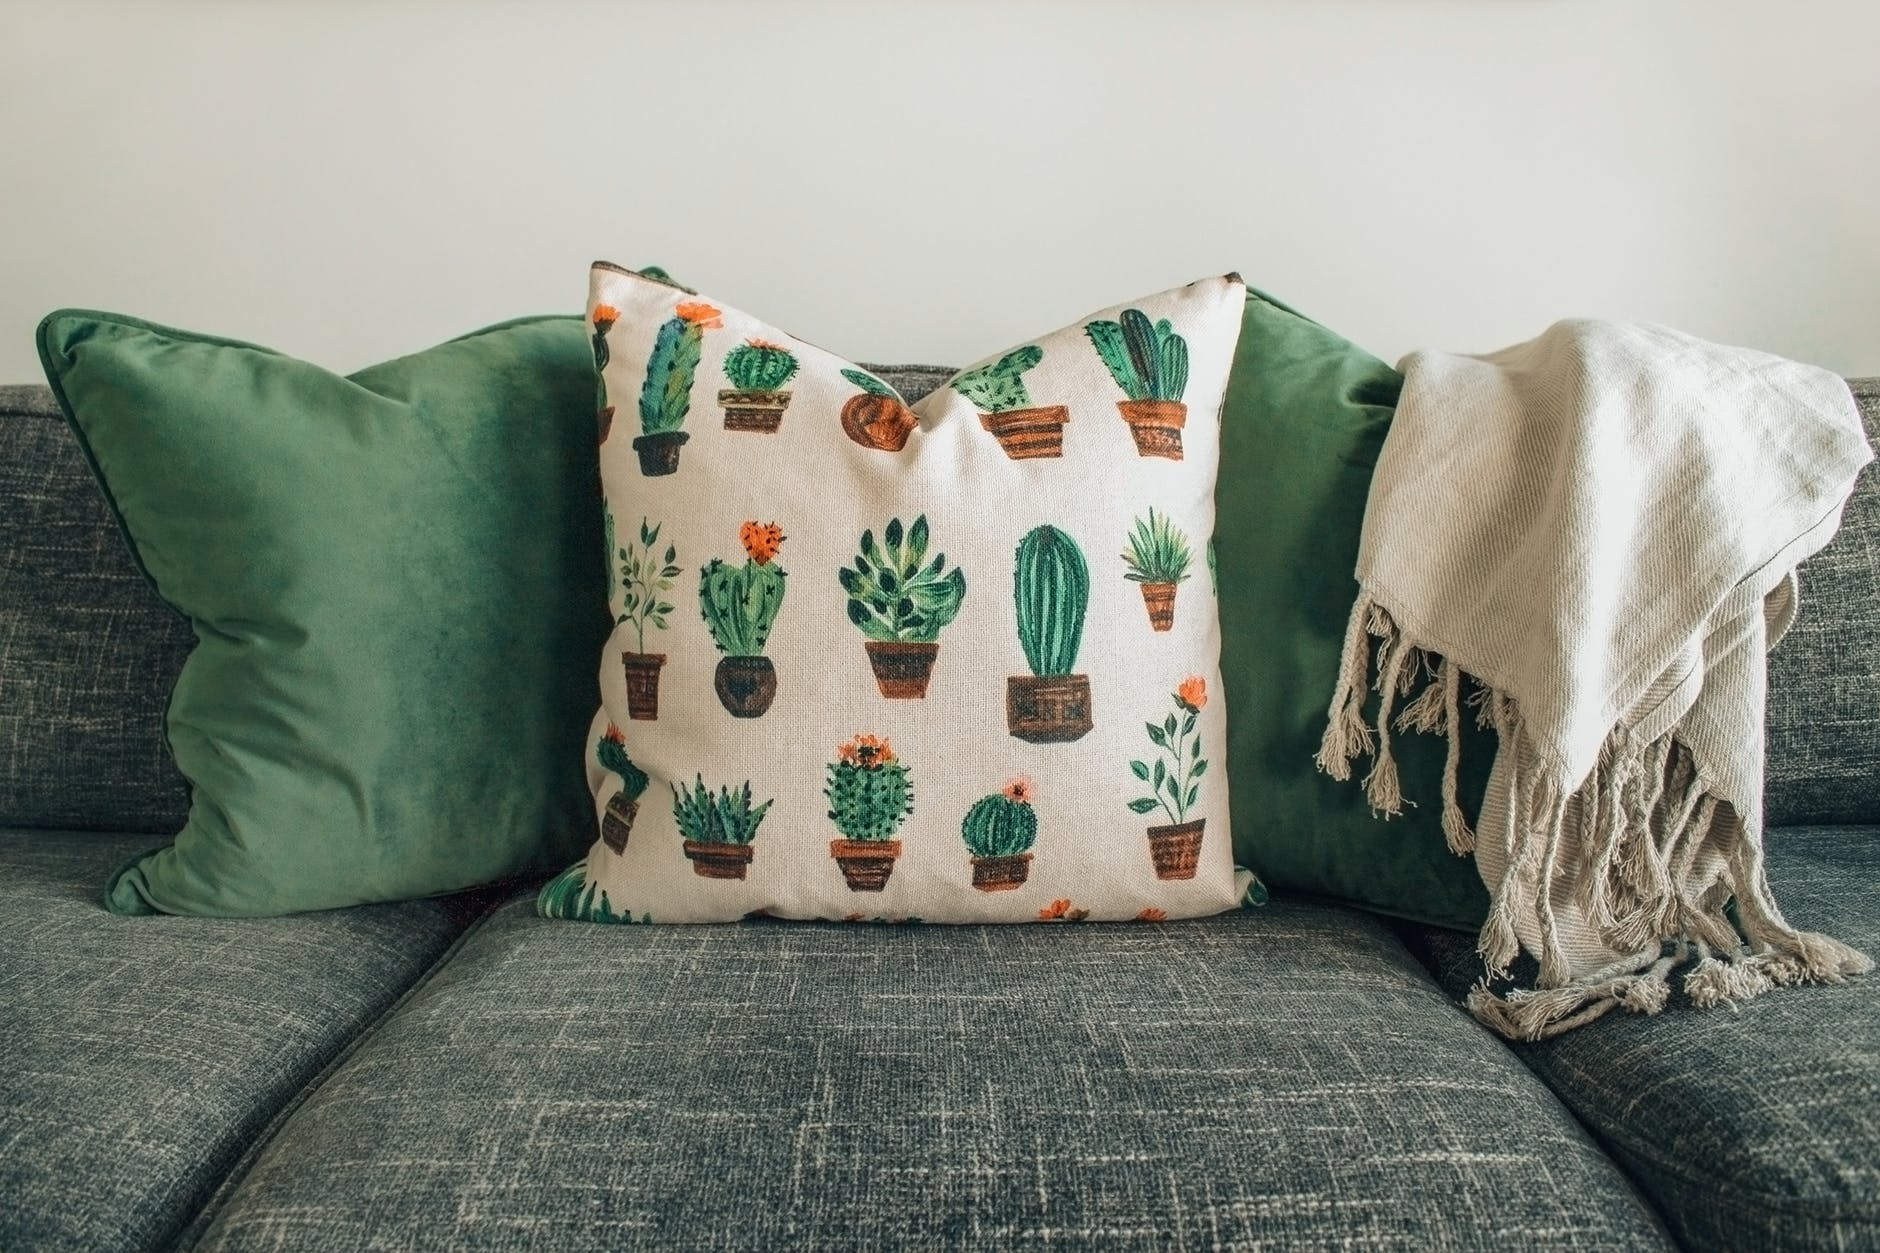 Decorative pillows and sheet on couch